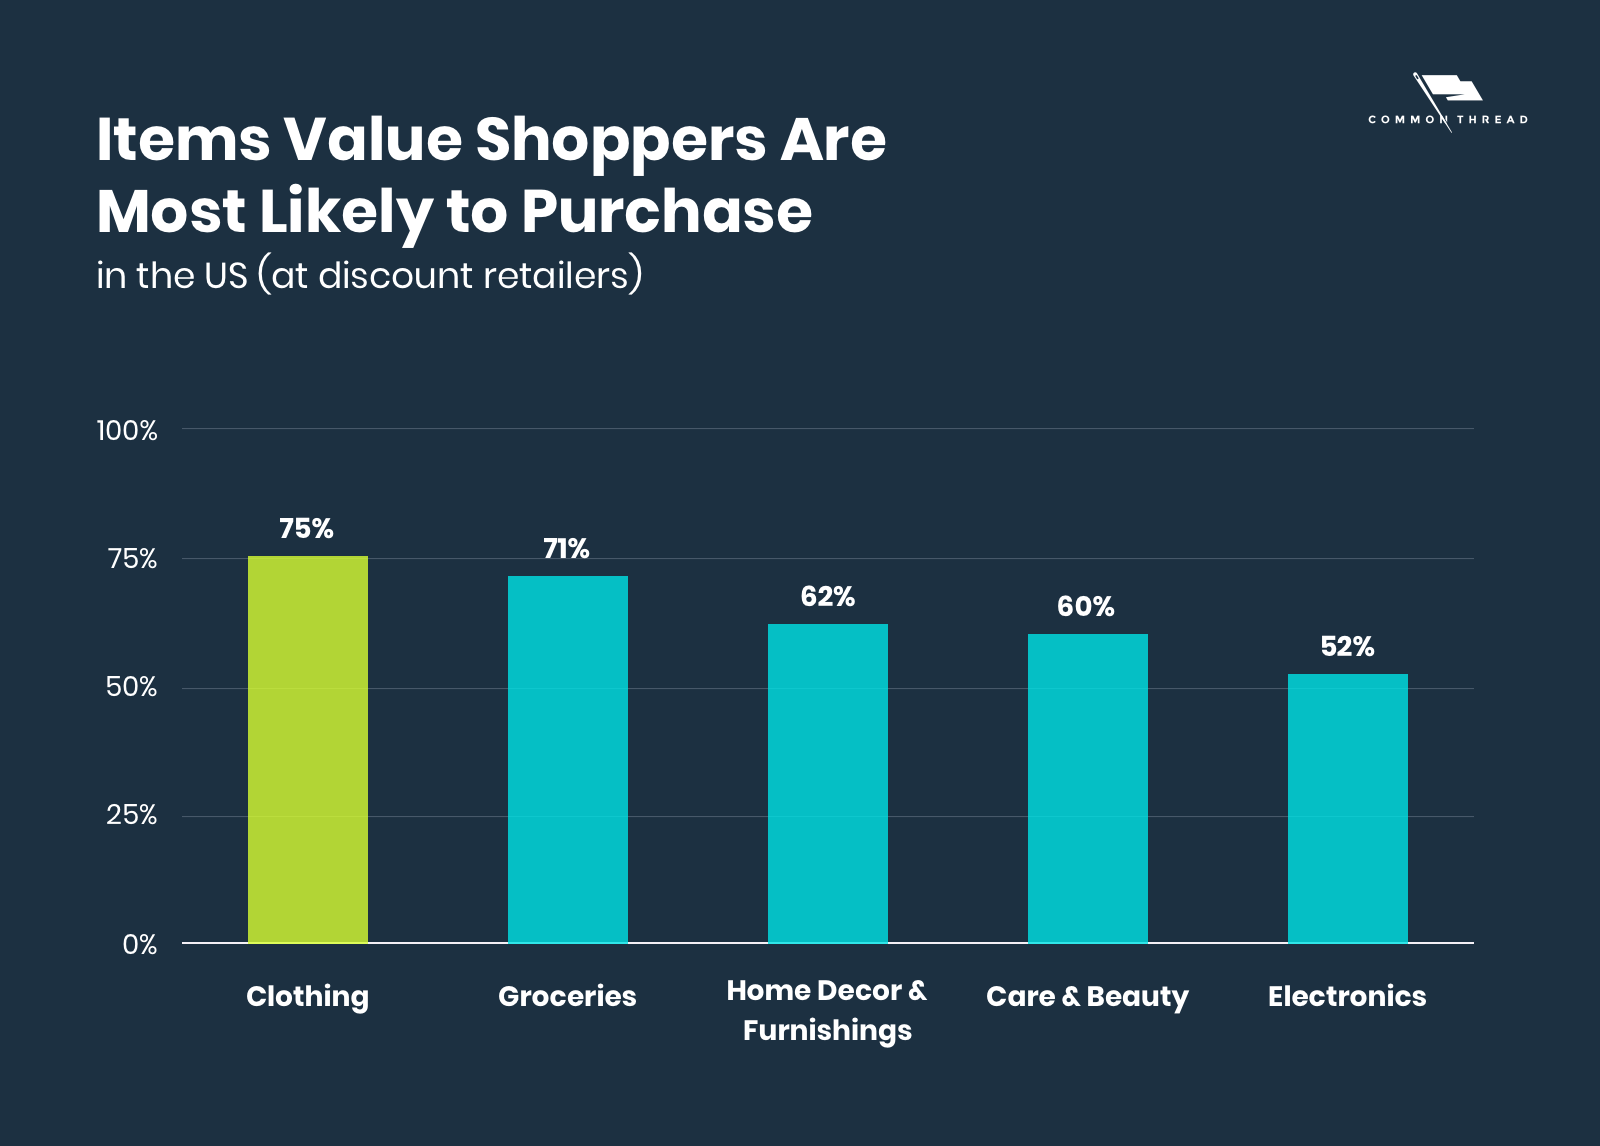 Items Value Shoppers Are Most Likely to Purchase at Discount Retailers